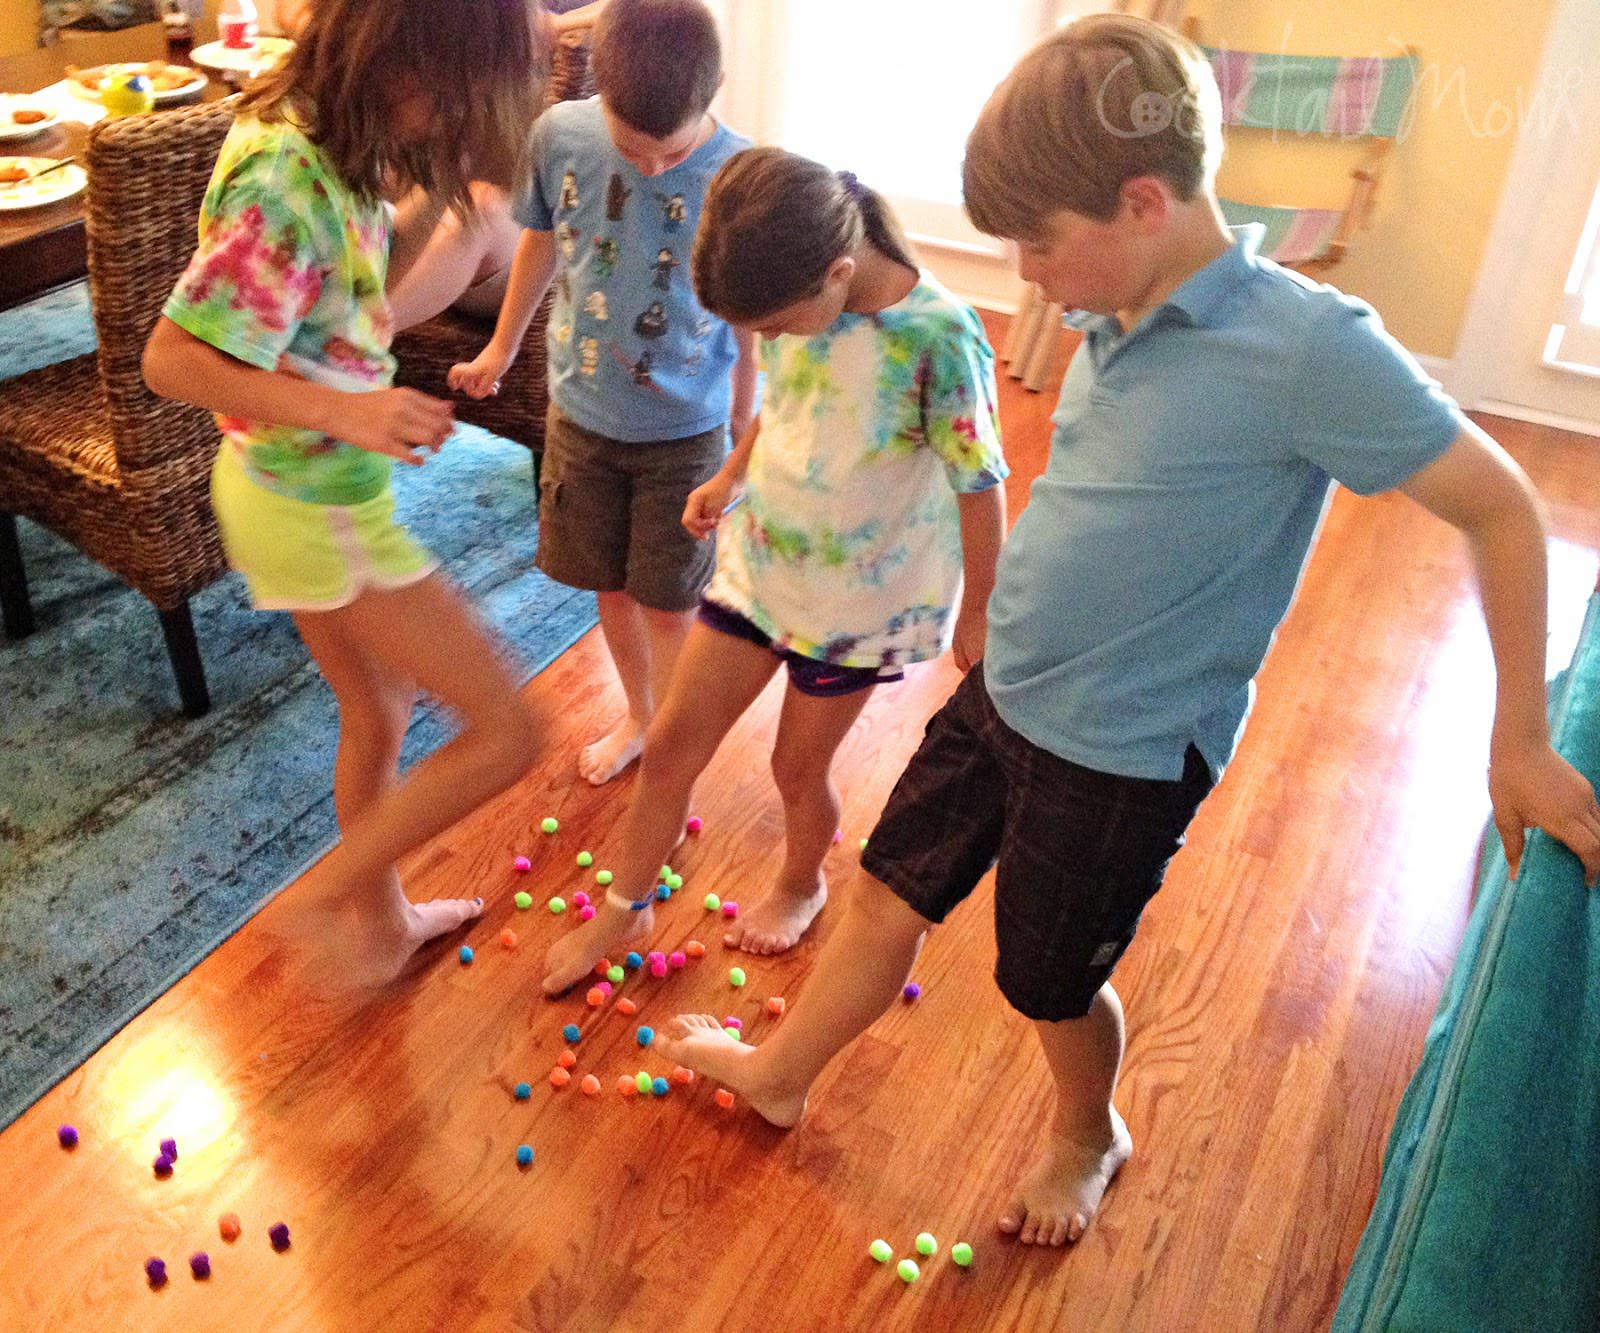 Funny Indoor Party Games